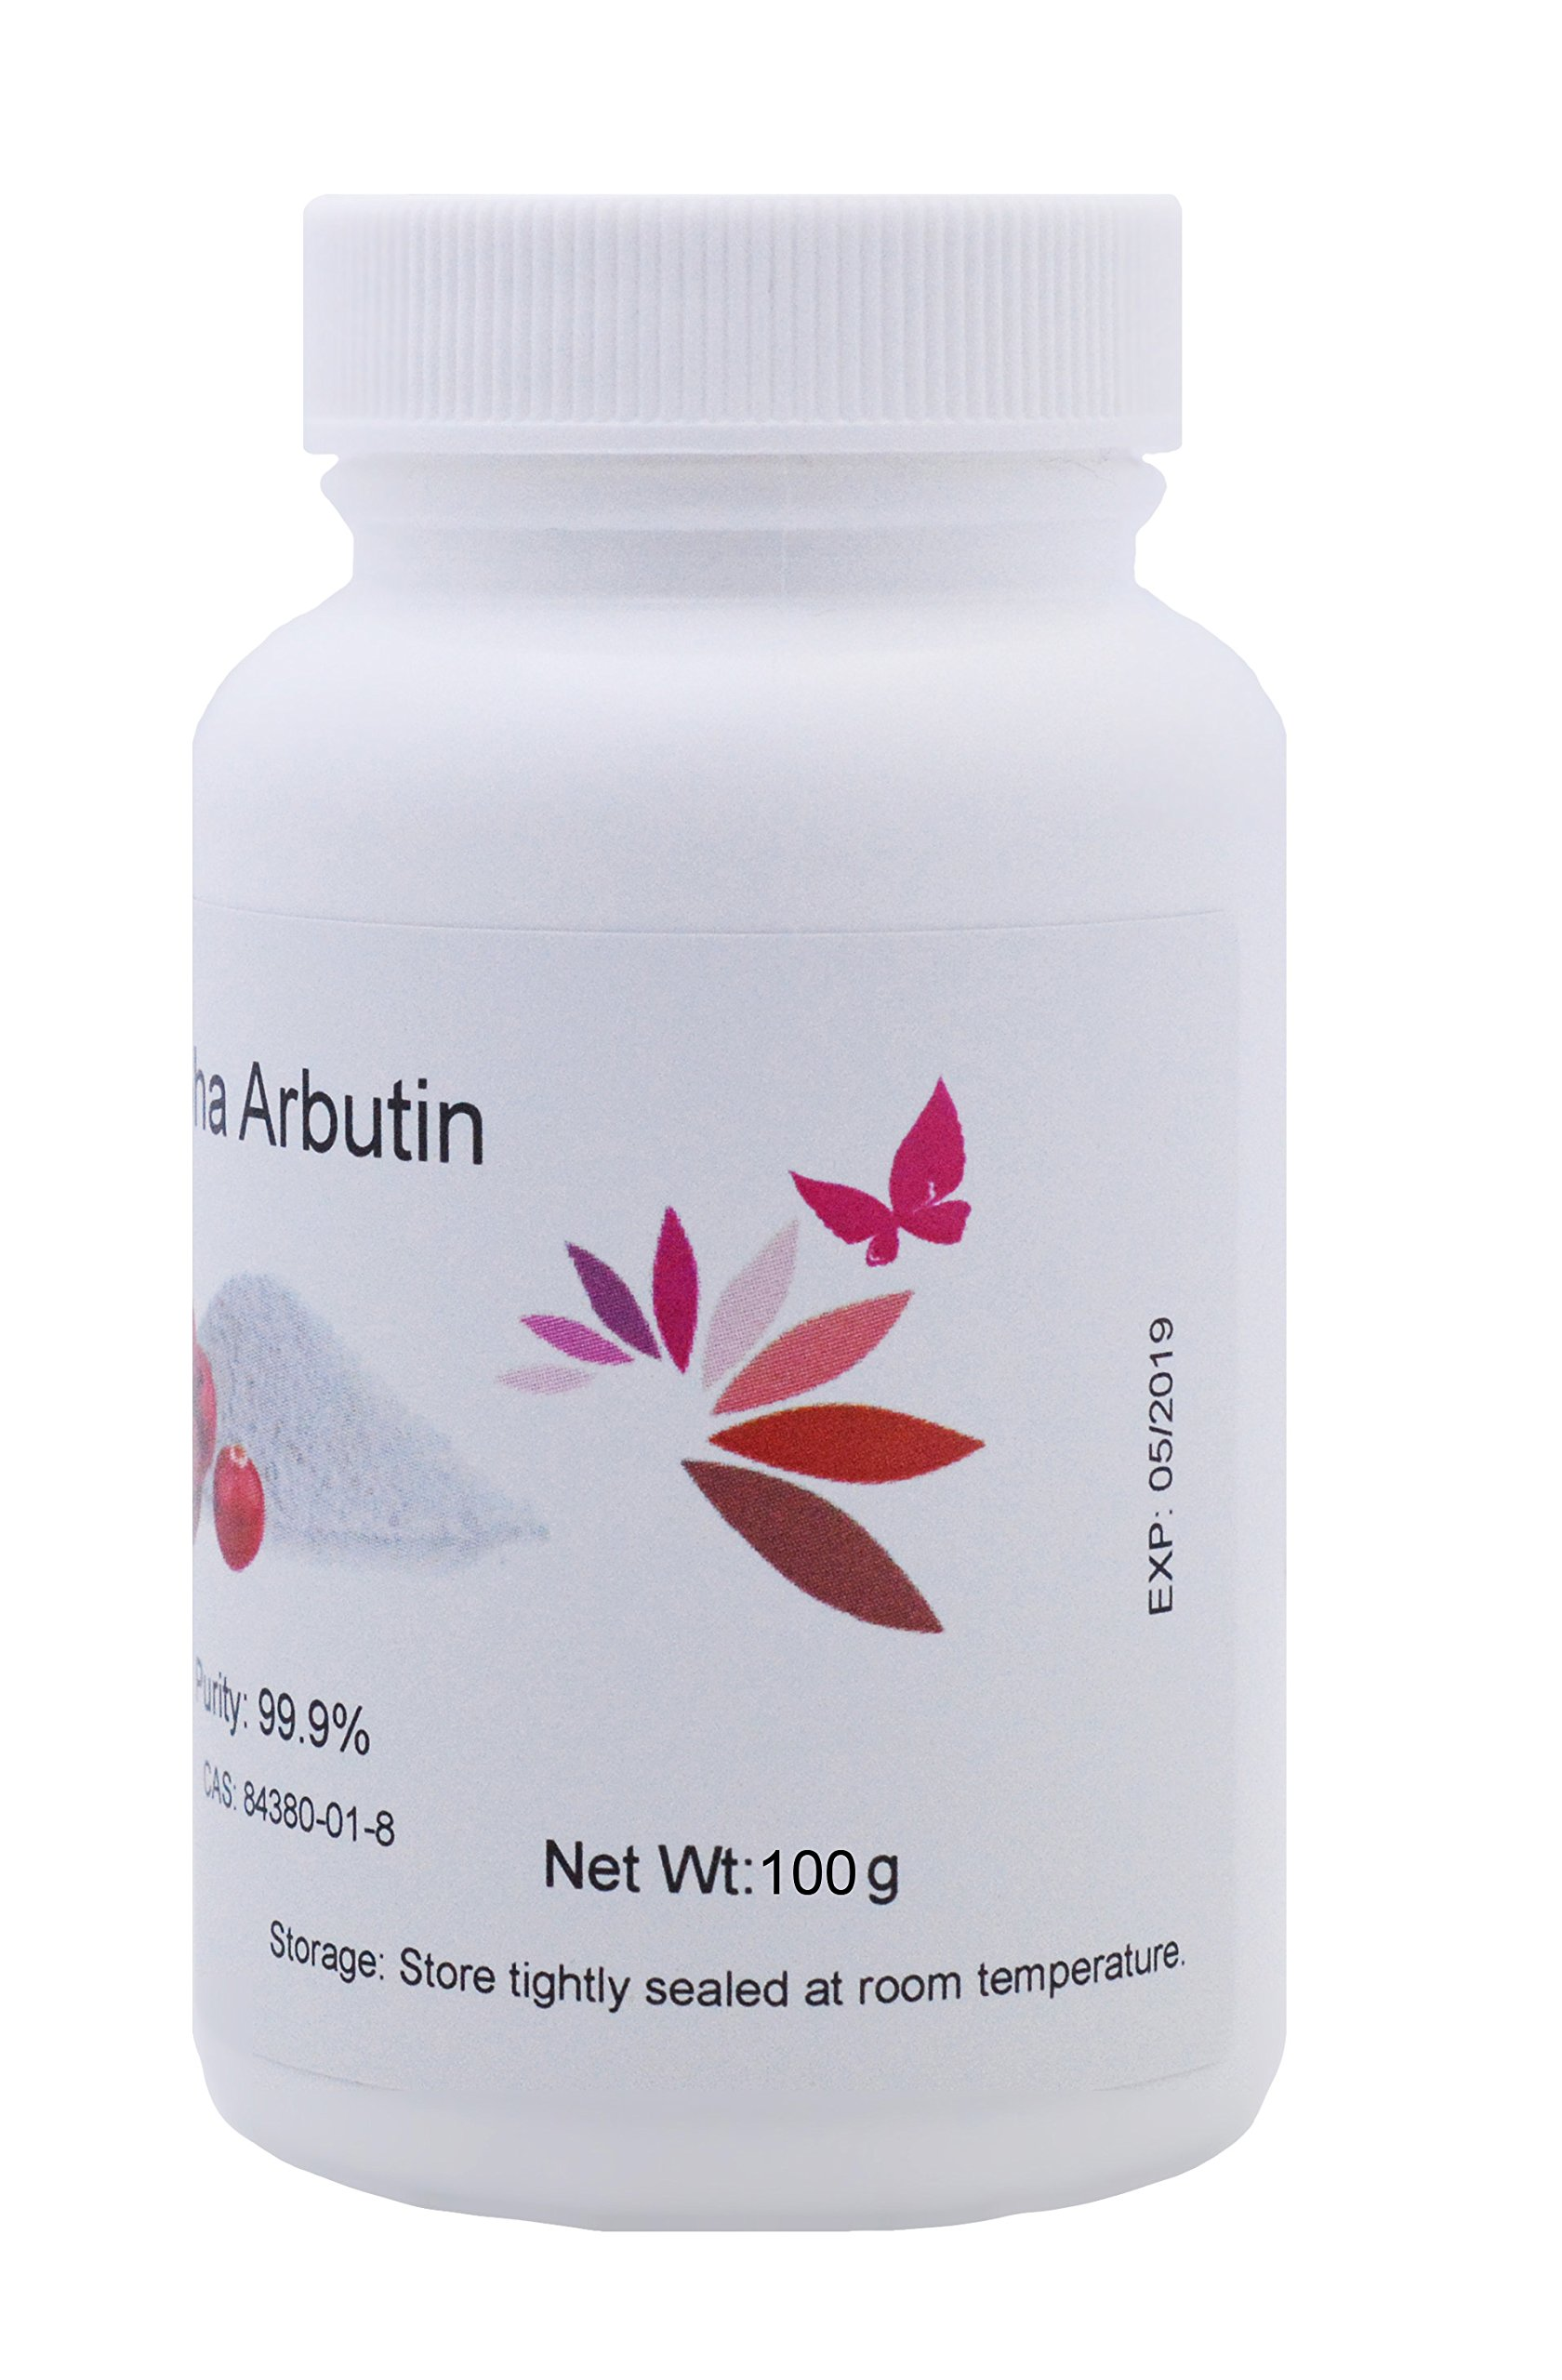 Pure Alpha-Arbutin Powder, 100 grams, Quality Guaranteed! Good for Skin Lightening by L'eternel World (Image #2)